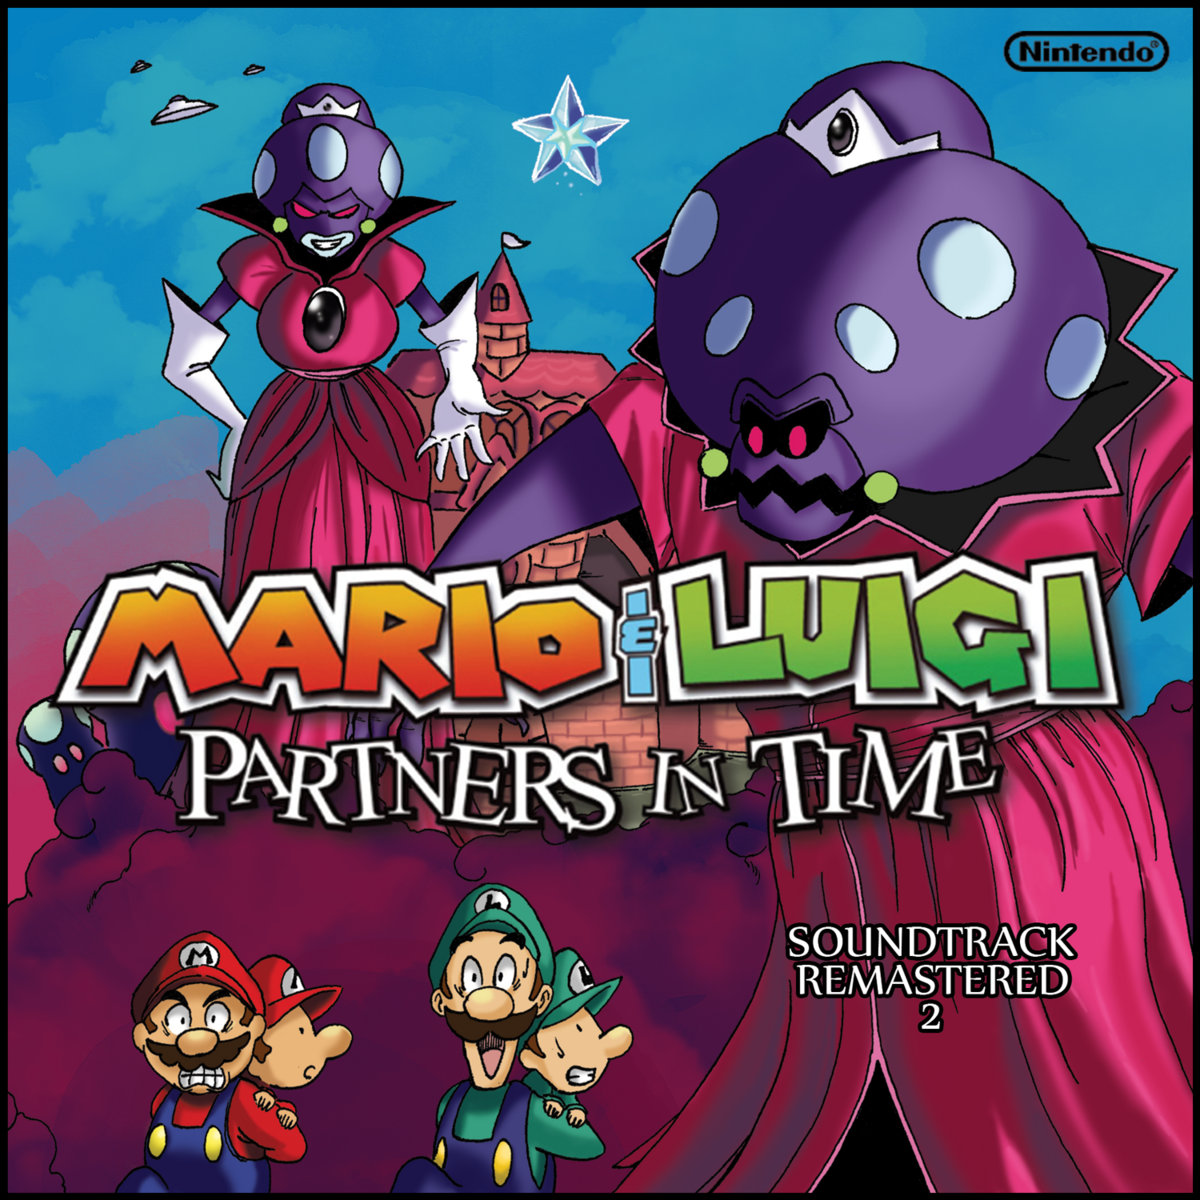 Mario Luigi Partners In Time Soundtrack Remastered 2